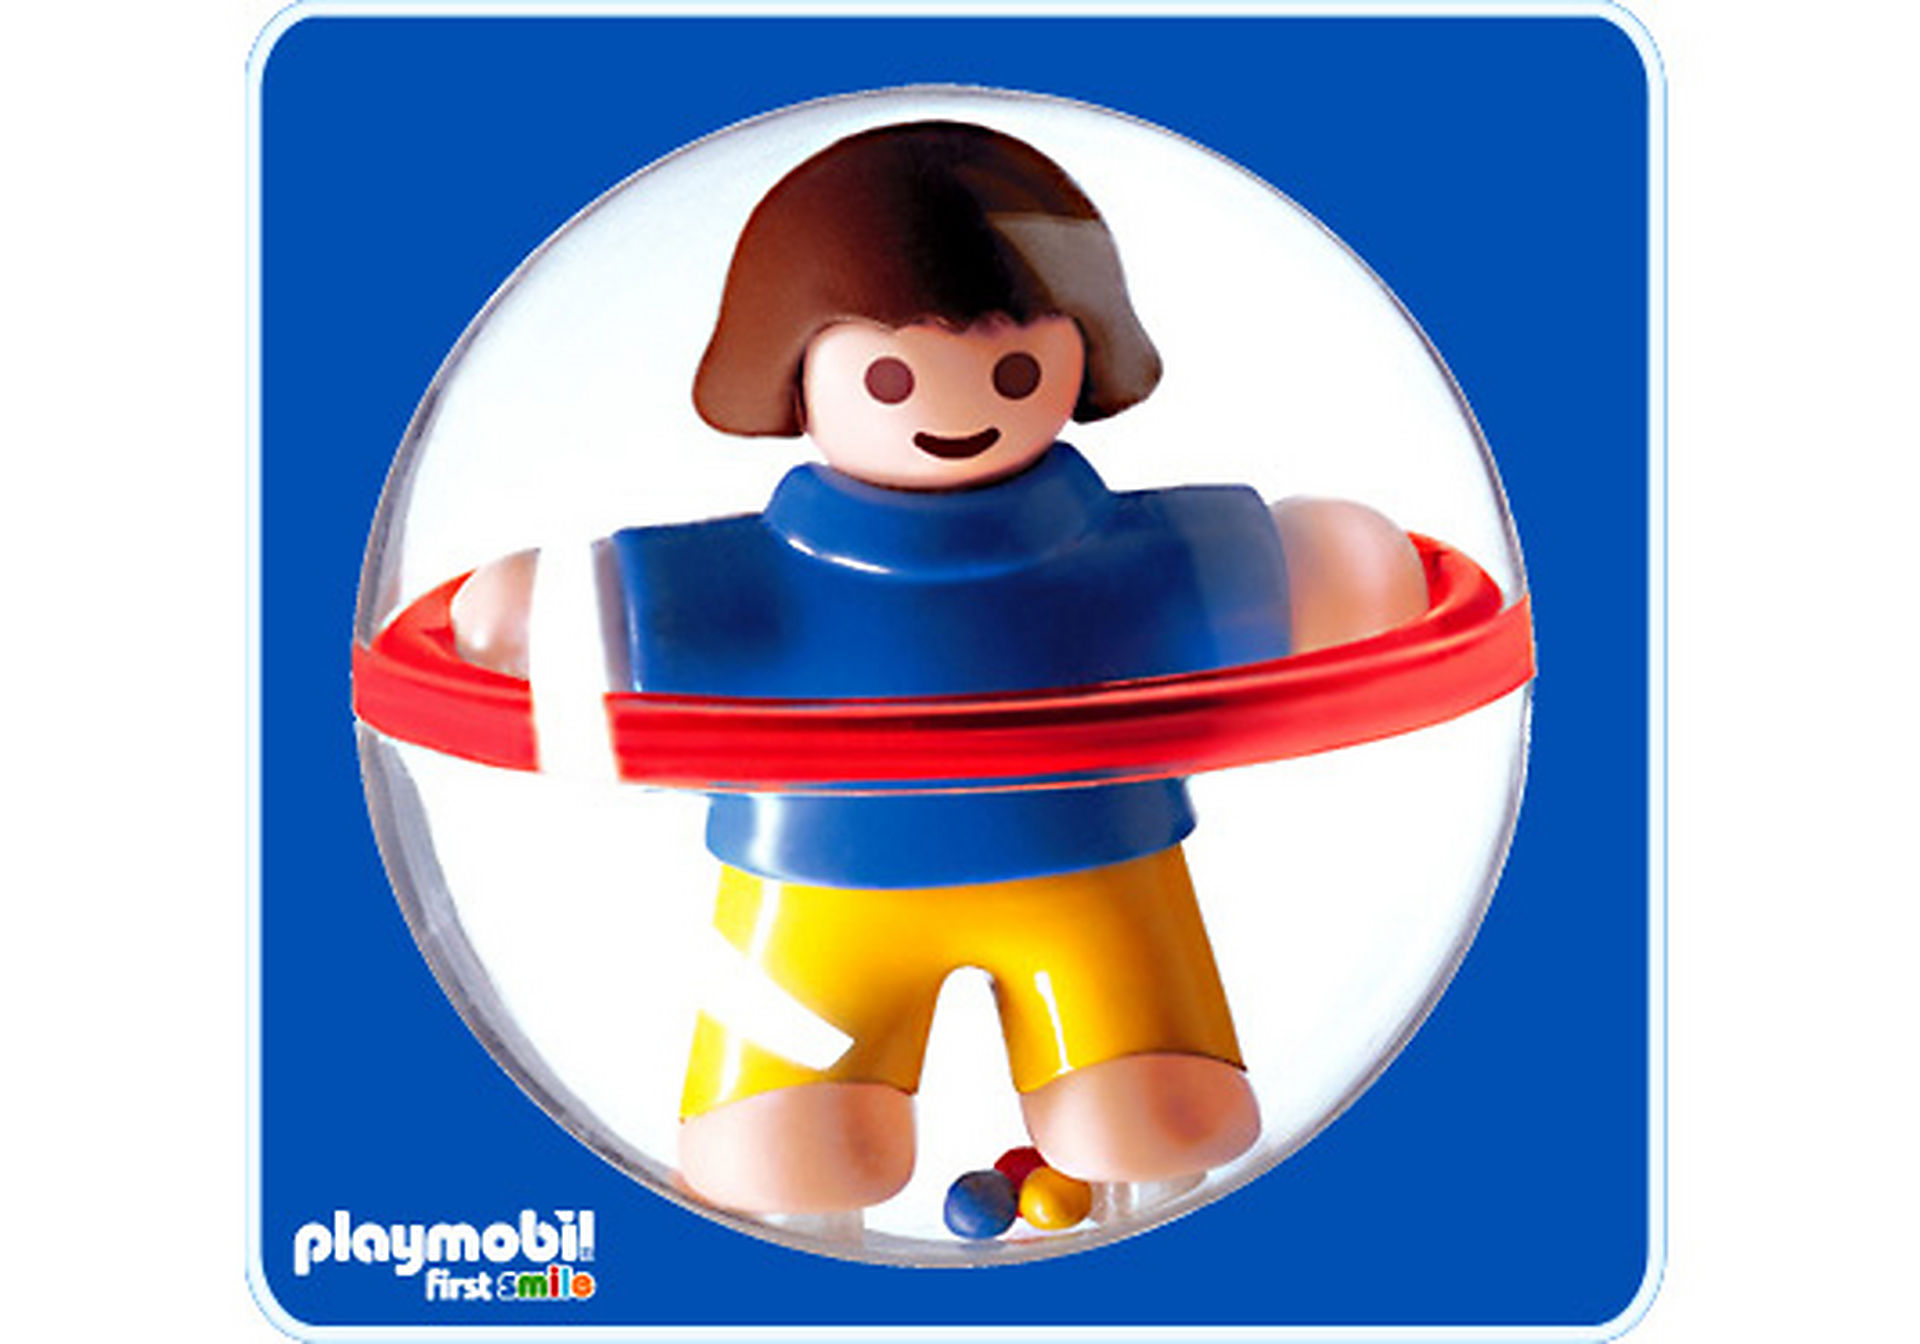 http://media.playmobil.com/i/playmobil/6405-A_product_detail/Boule transparente/fille